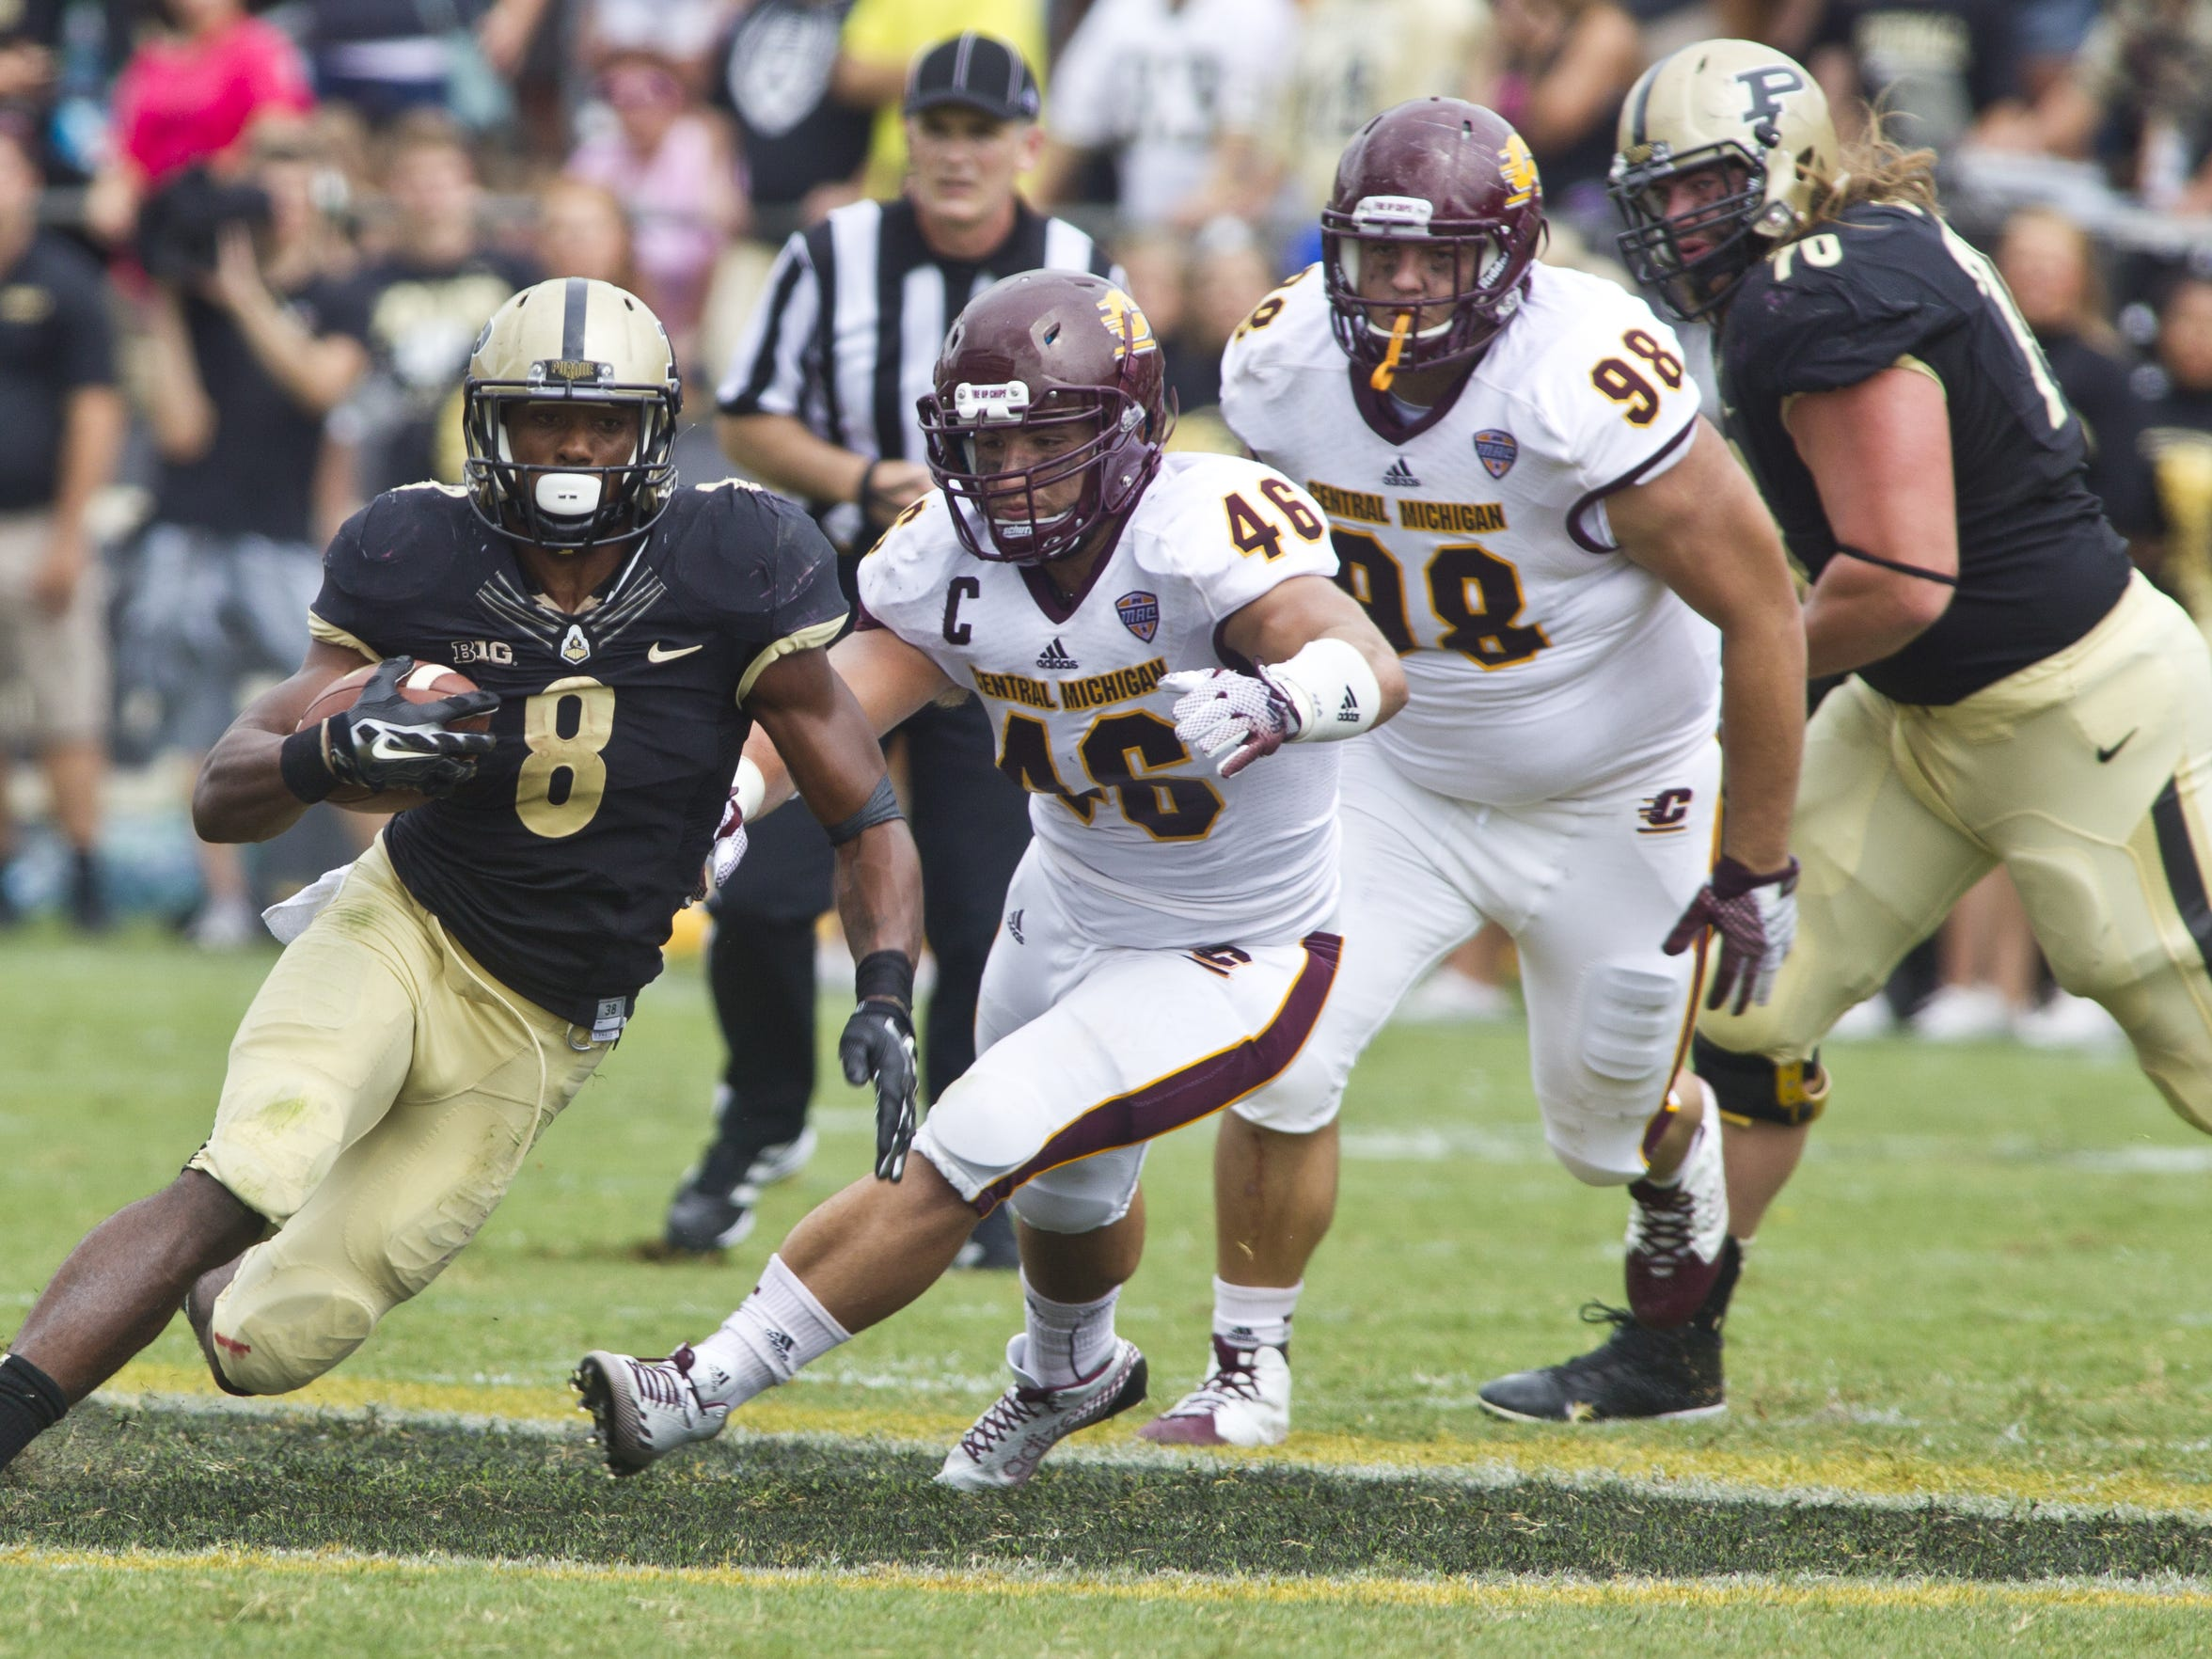 Purdue's Raheem Mosert out runs Central Michigan's Justin Cherocci (46) as Kelby Latta (98) gives chase on Saturday in West Lafayette. CMU won the game, 38-17.